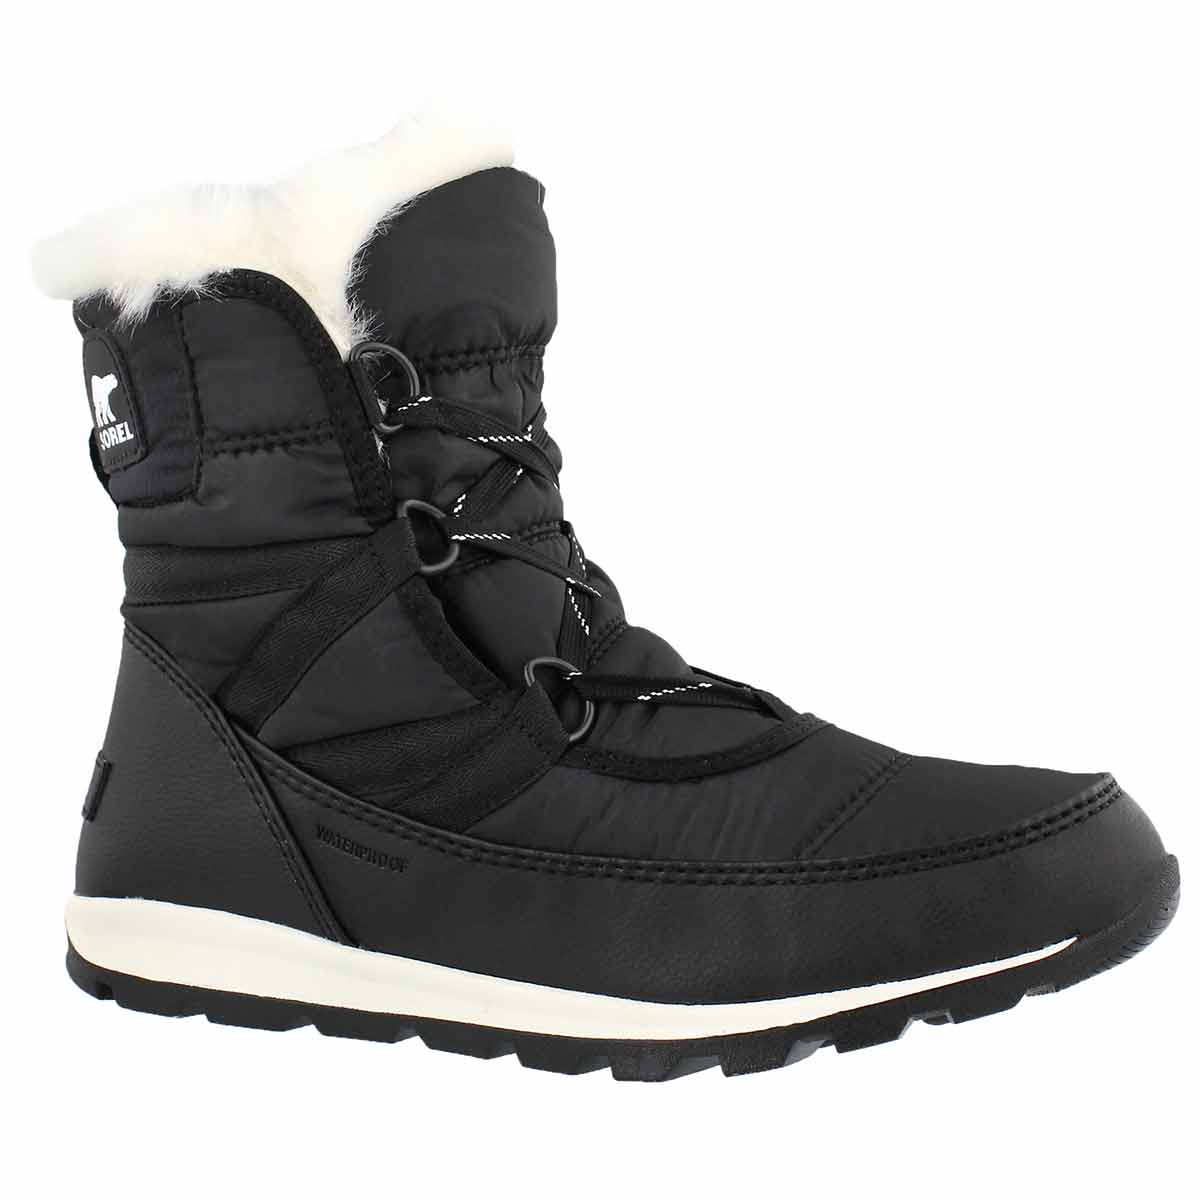 Lds WhitneyShortLace blk wp winter boot